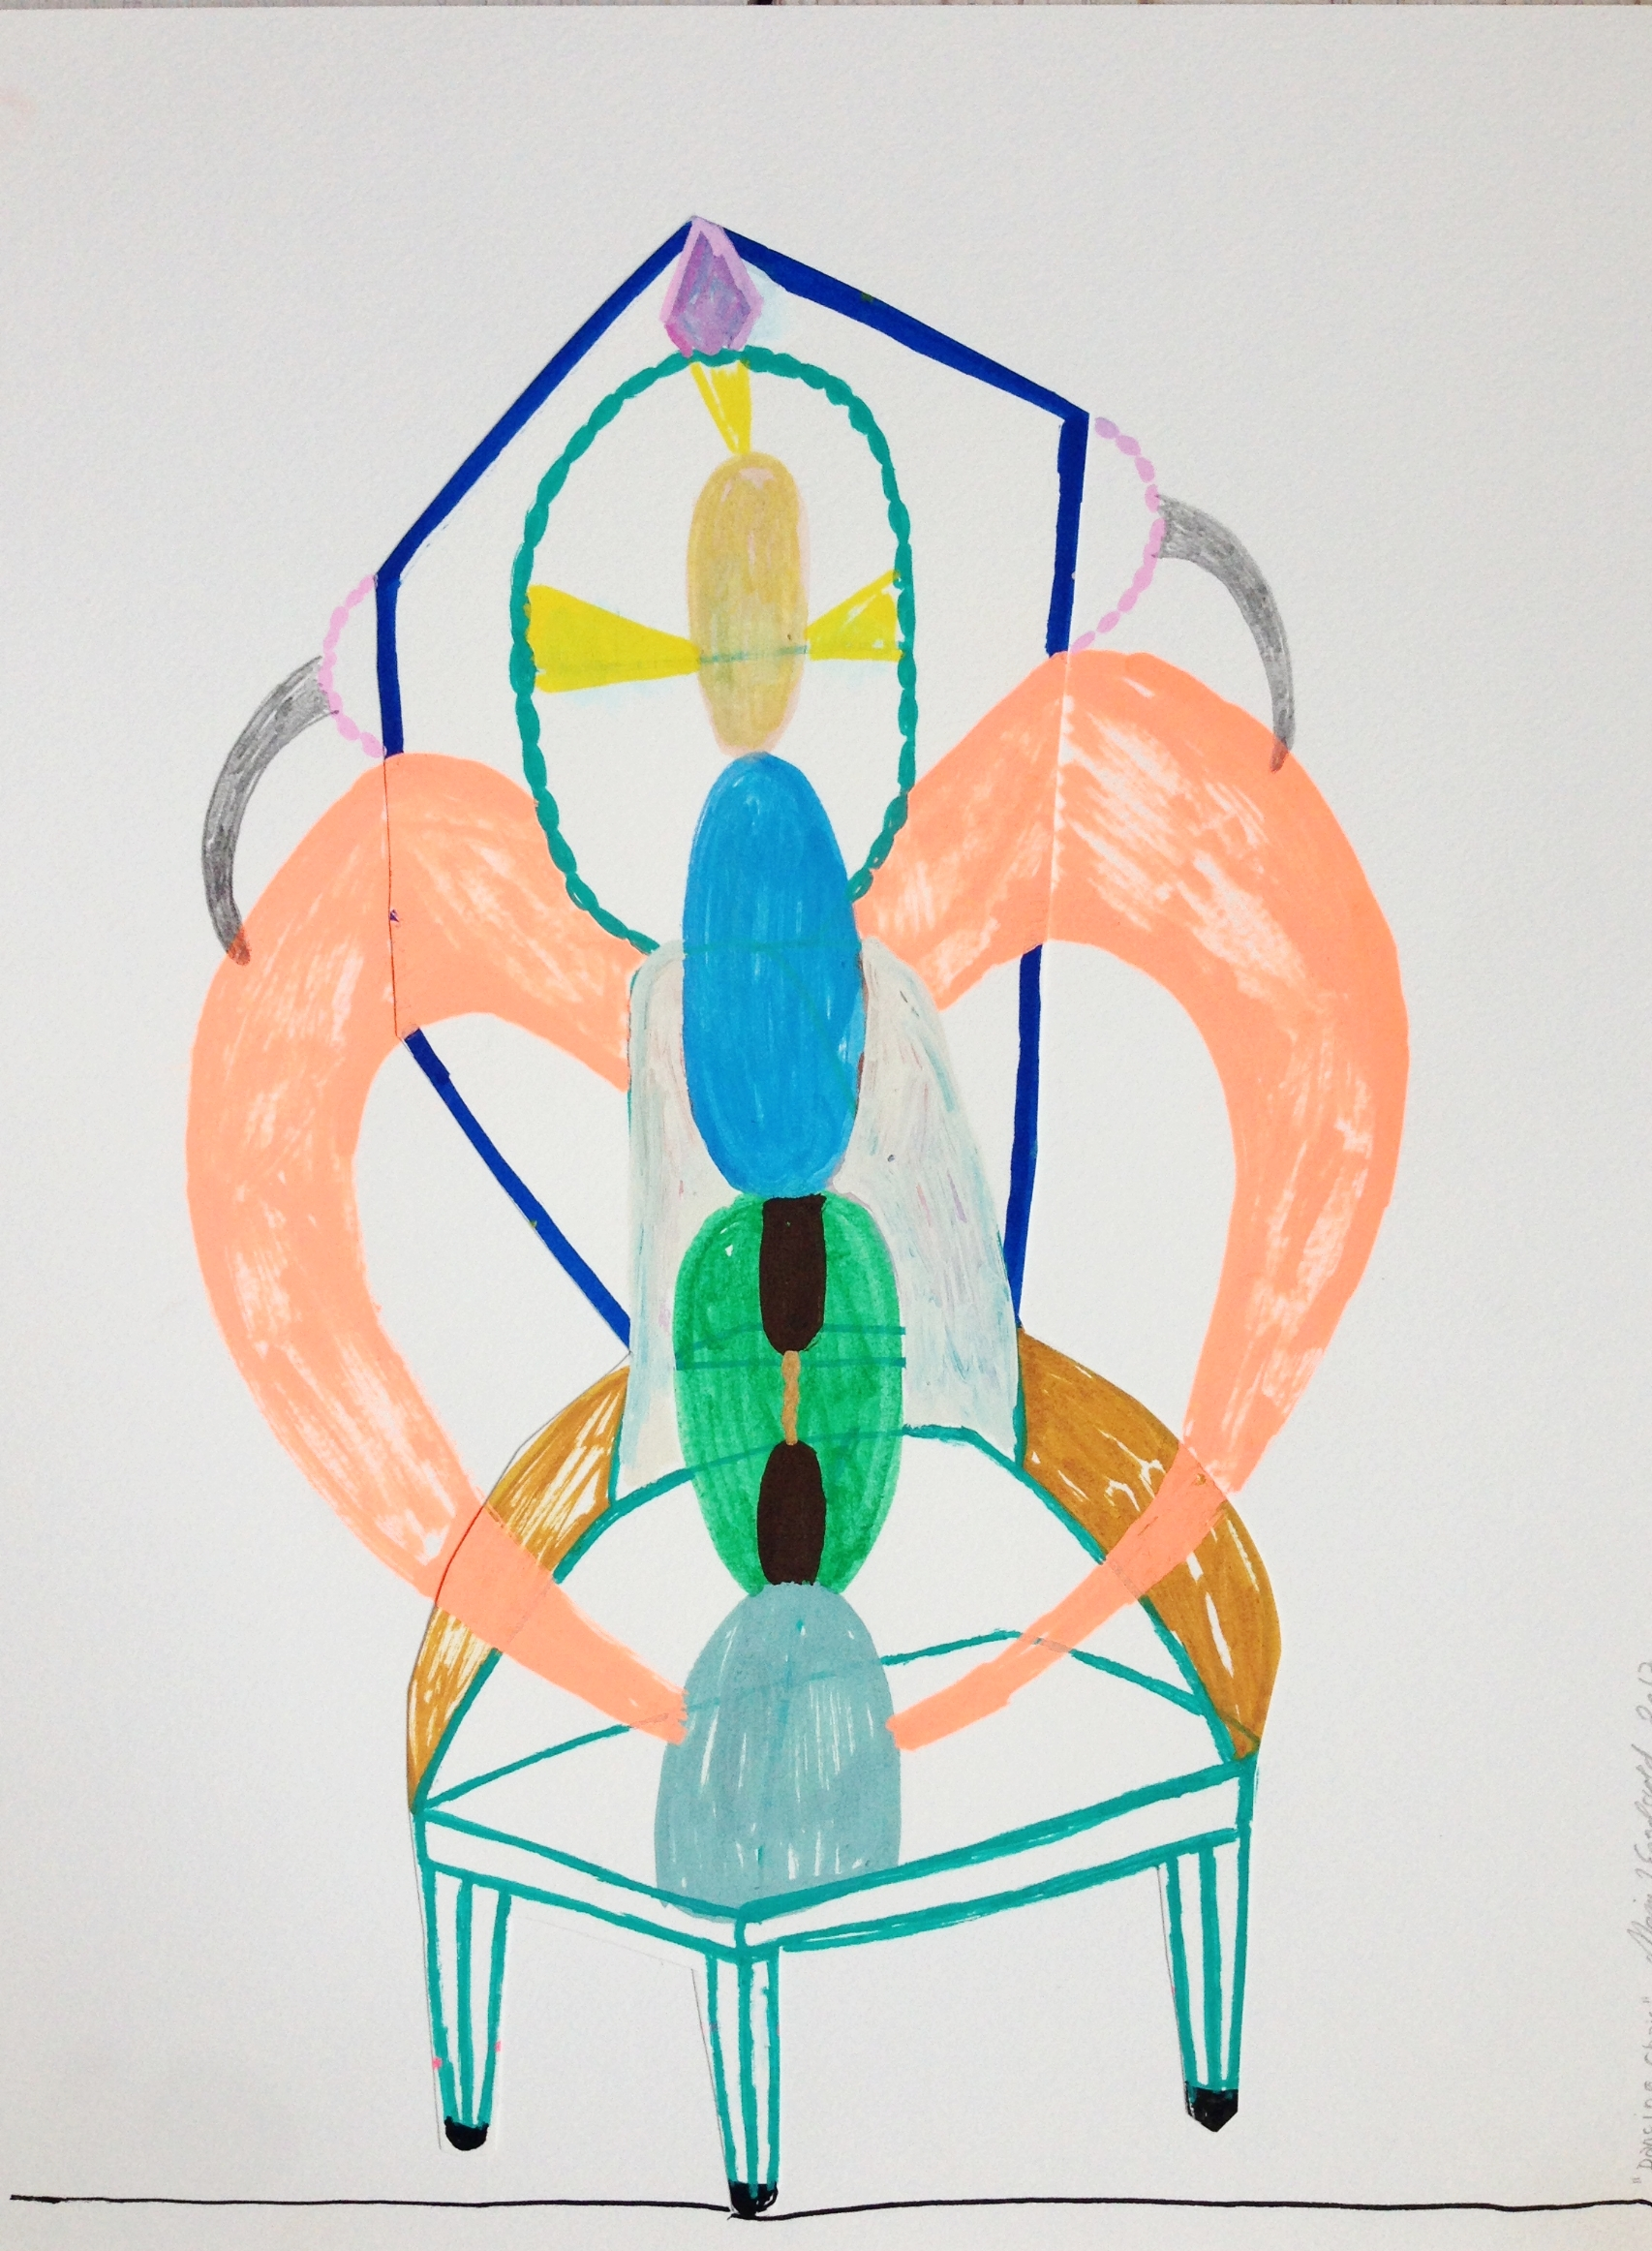 """Marie J.Engelsvold. """"Dancing chair"""" 29,7 x 21 cm.Acrylic markers on paper. 2017"""